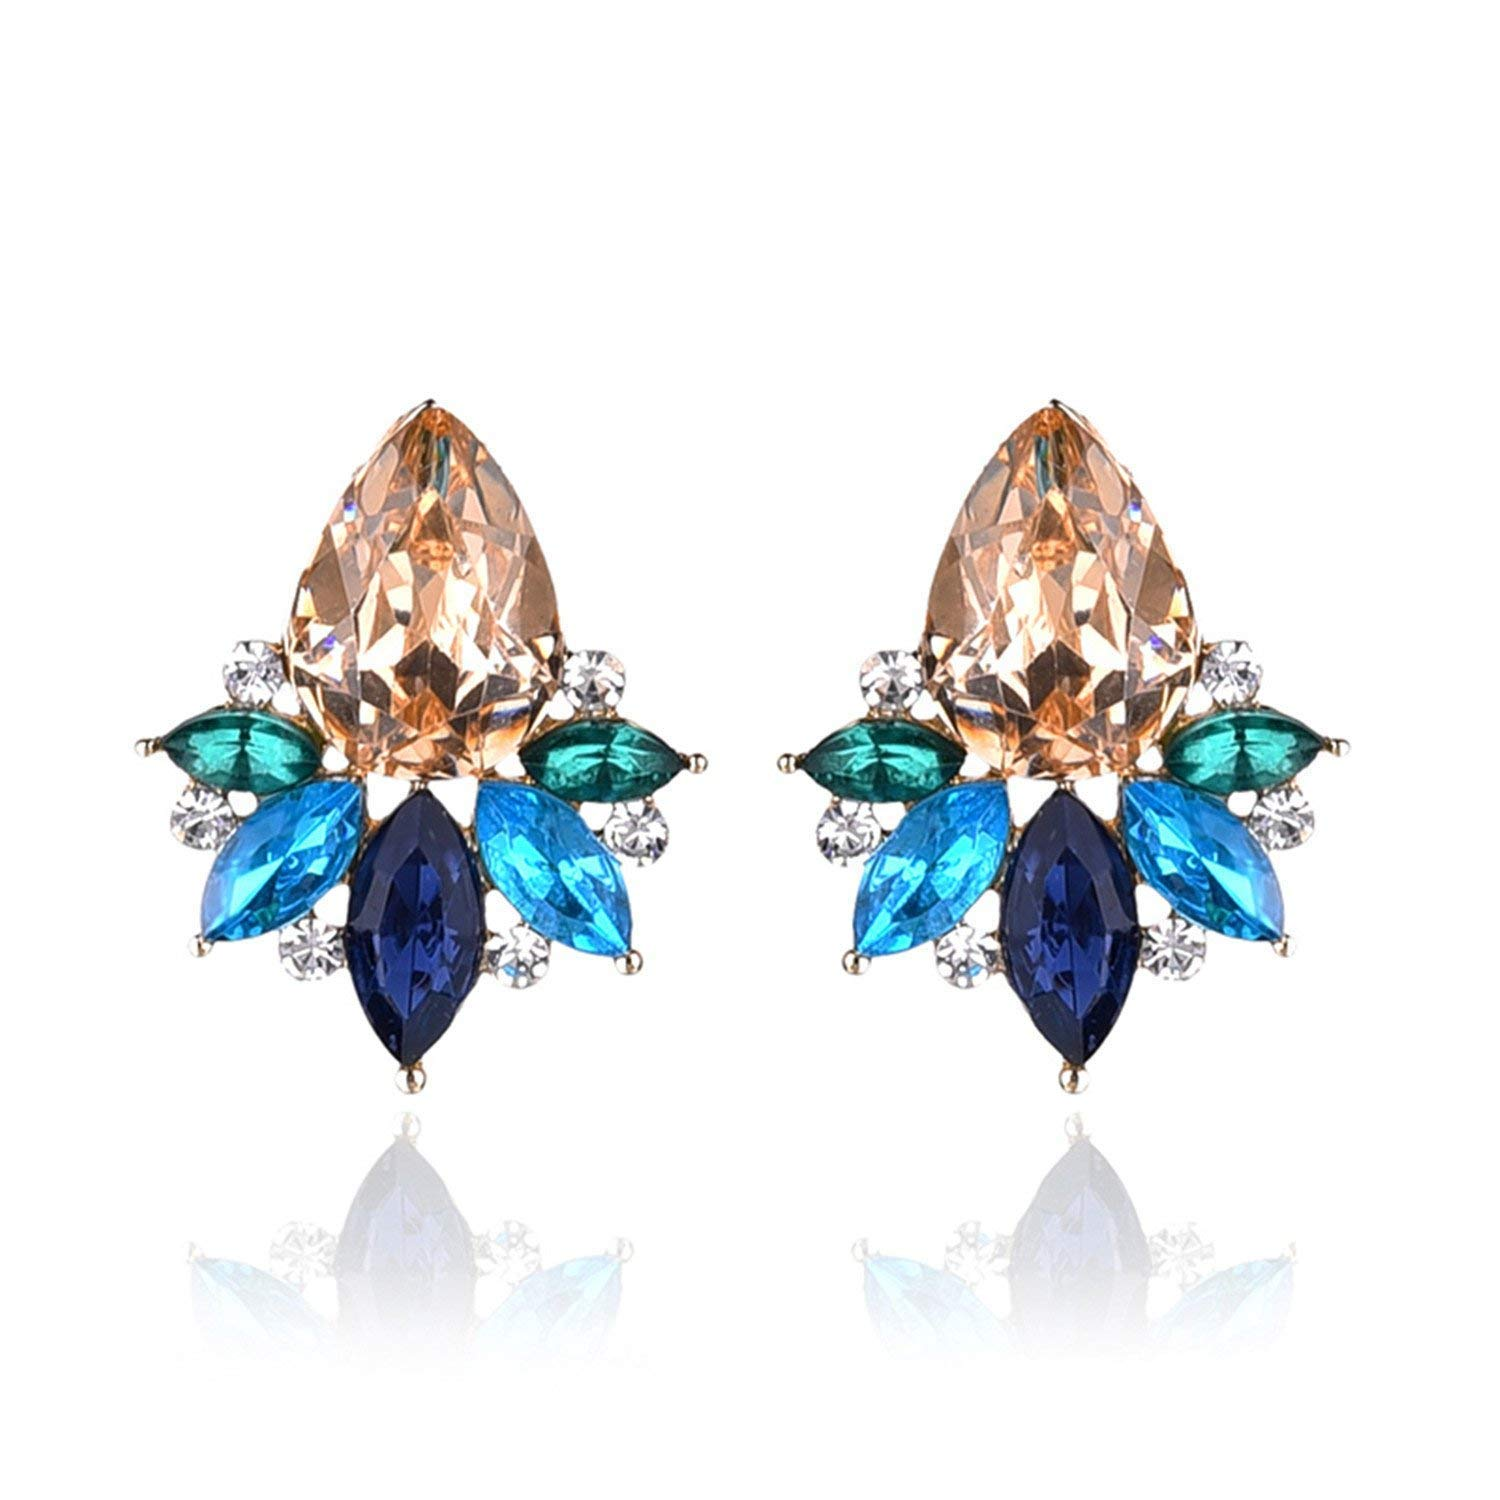 DLNCTD Unique Colorful Acrylic Crystal Stone Stud Earrings Fashion Women Piercing Earrings Birthday Gift Party Jewelry New